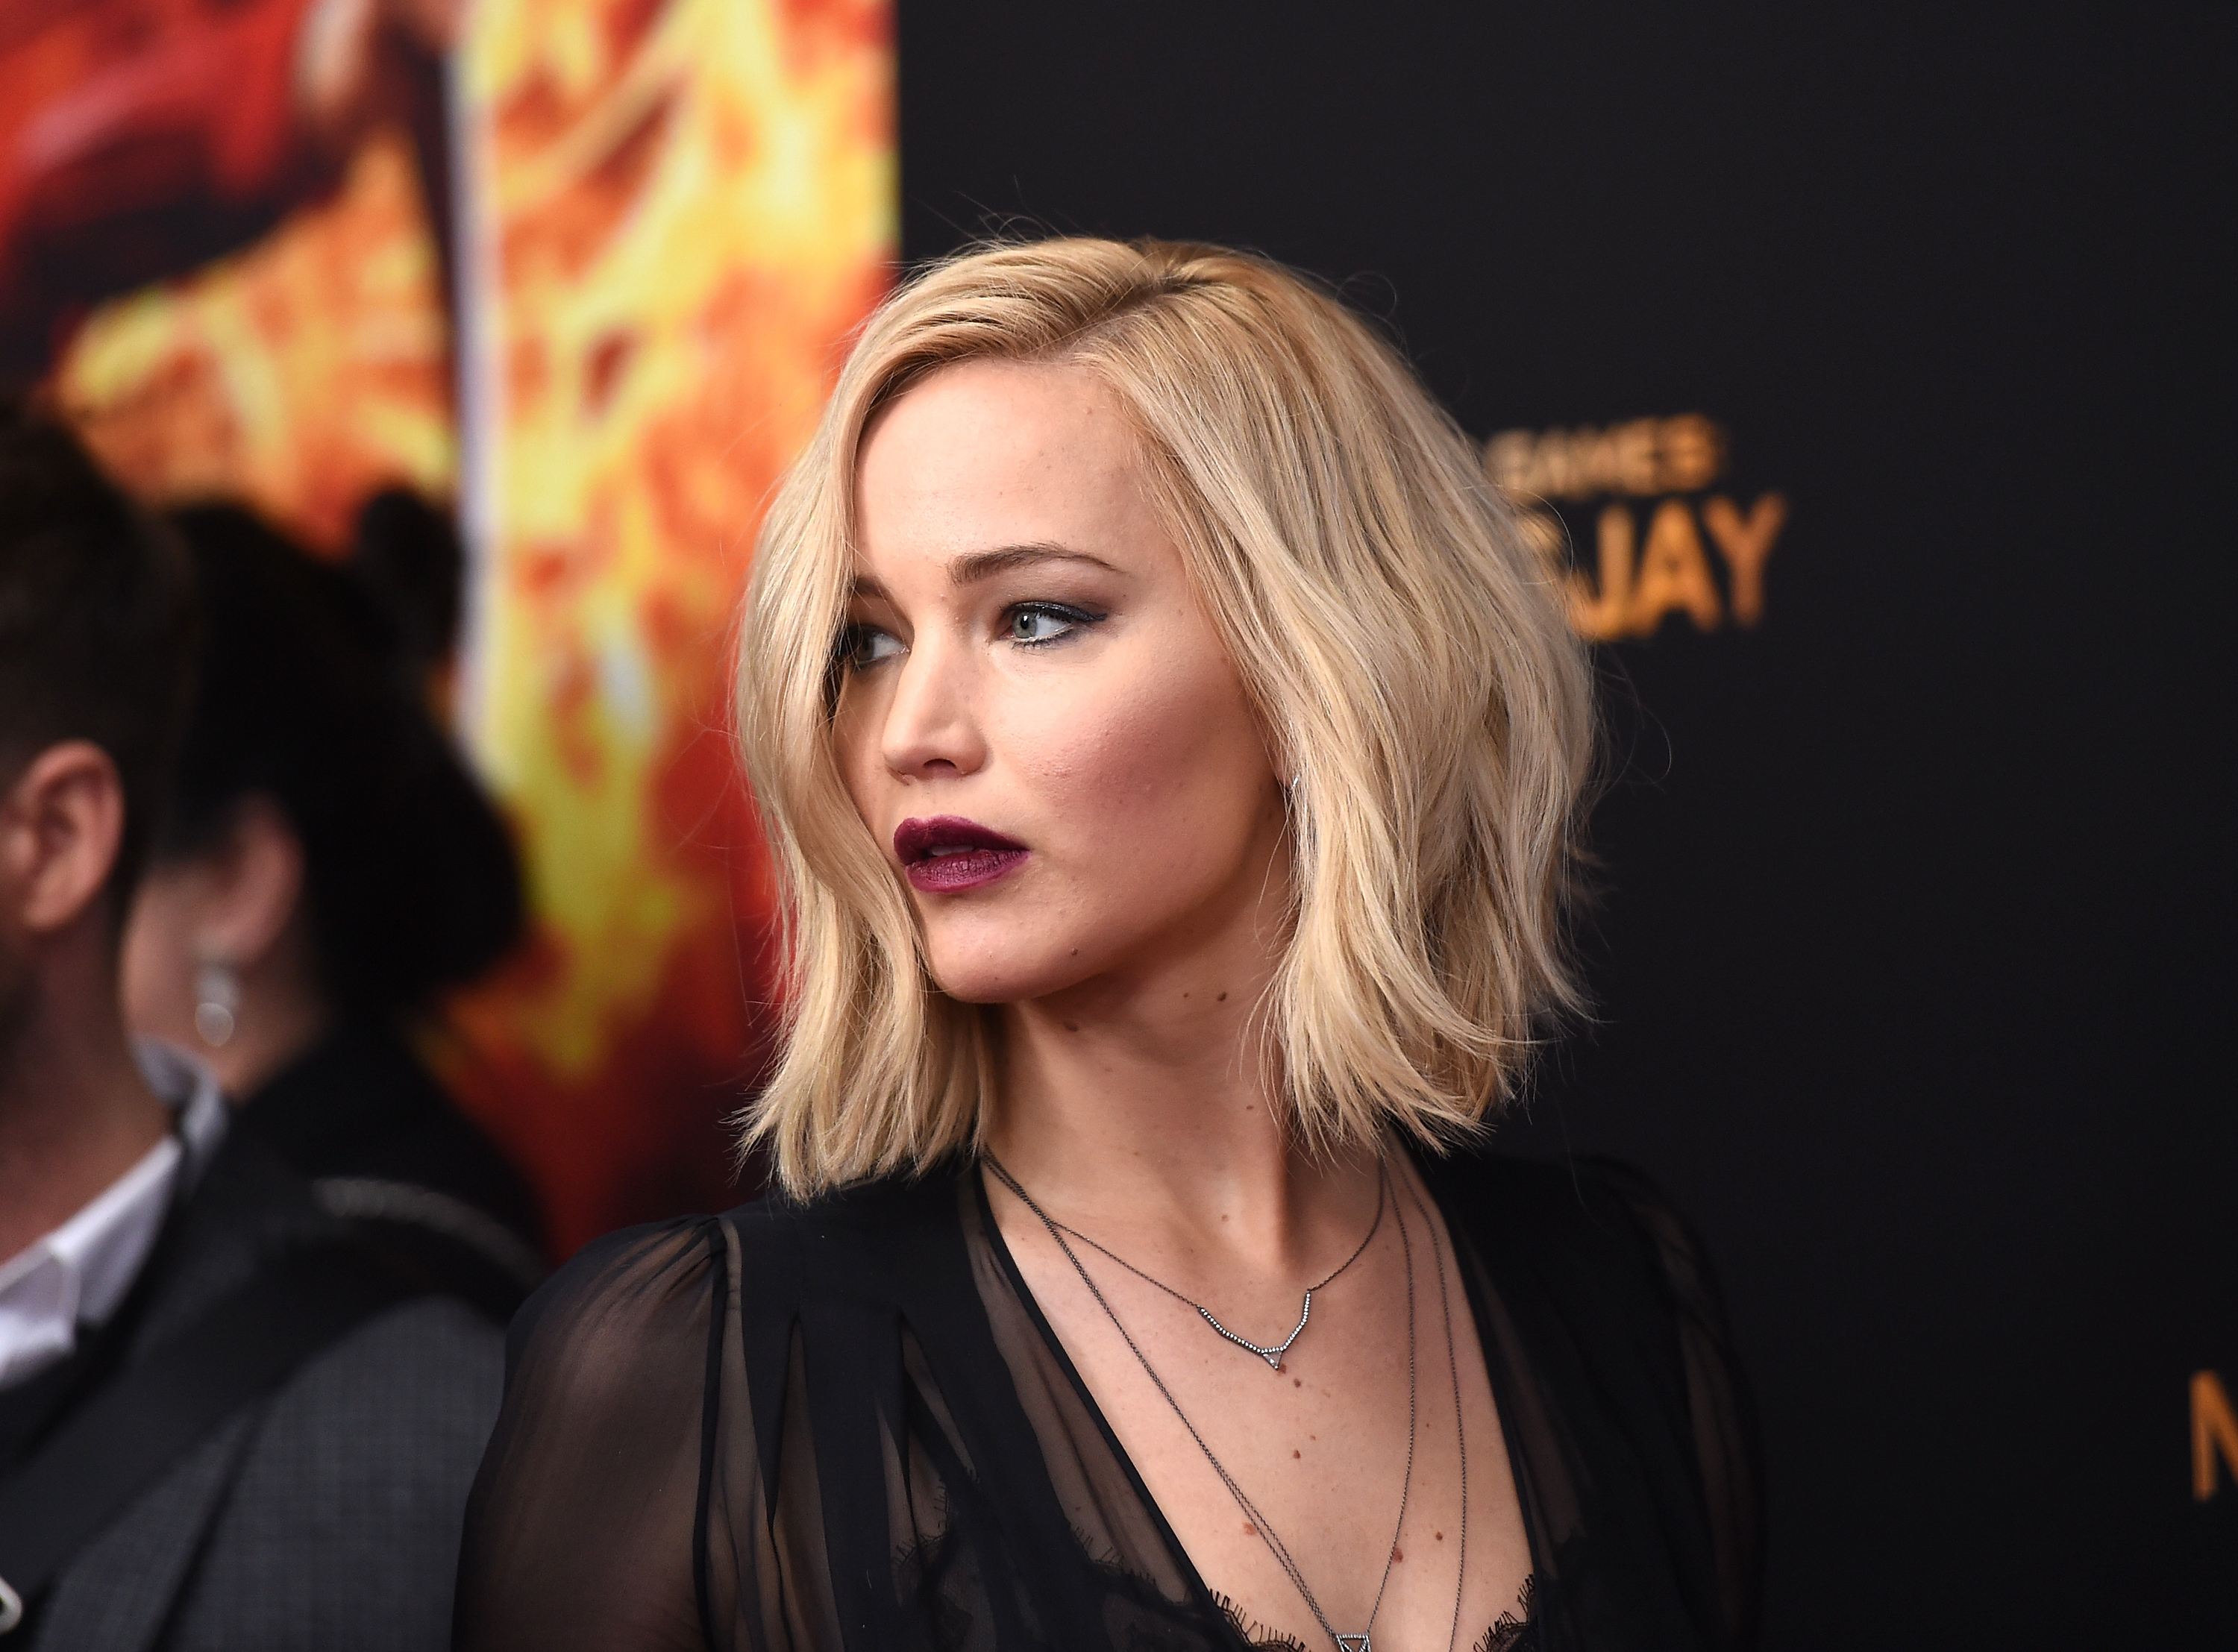 Jennifer Lawrence Volunteers as Tribute (to End Fat Shaming)